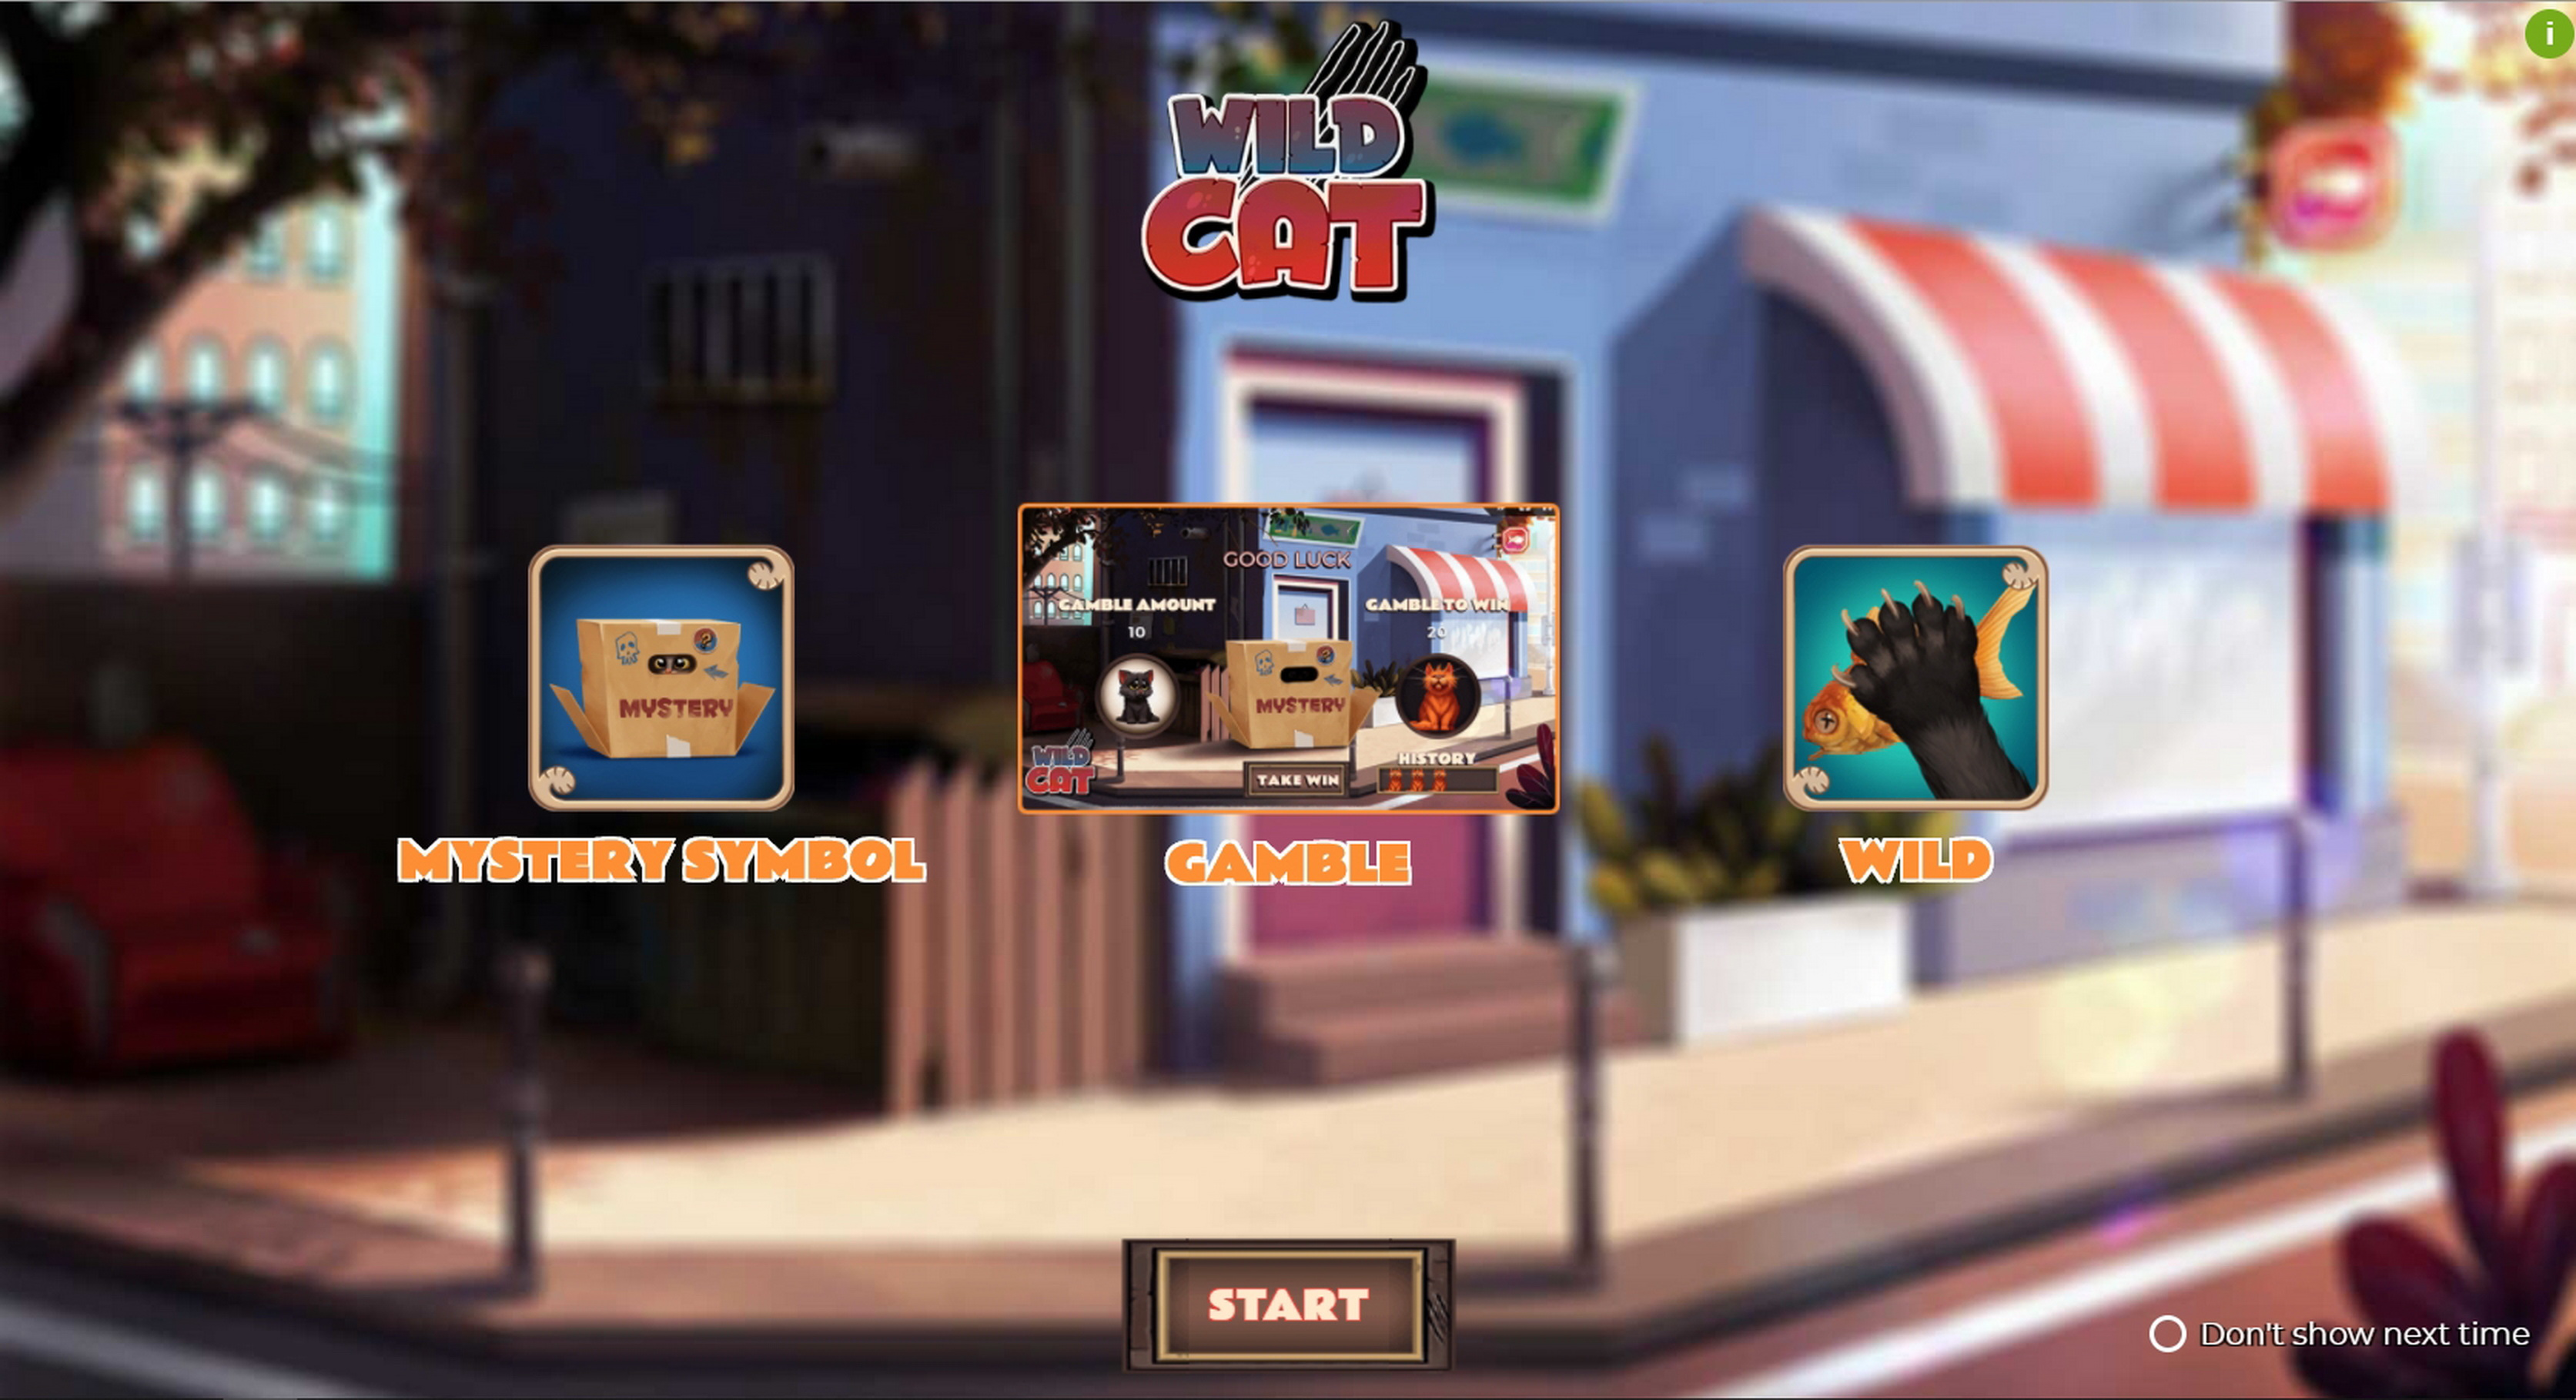 Play Wild Cat Free Casino Slot Game by Spinmatic